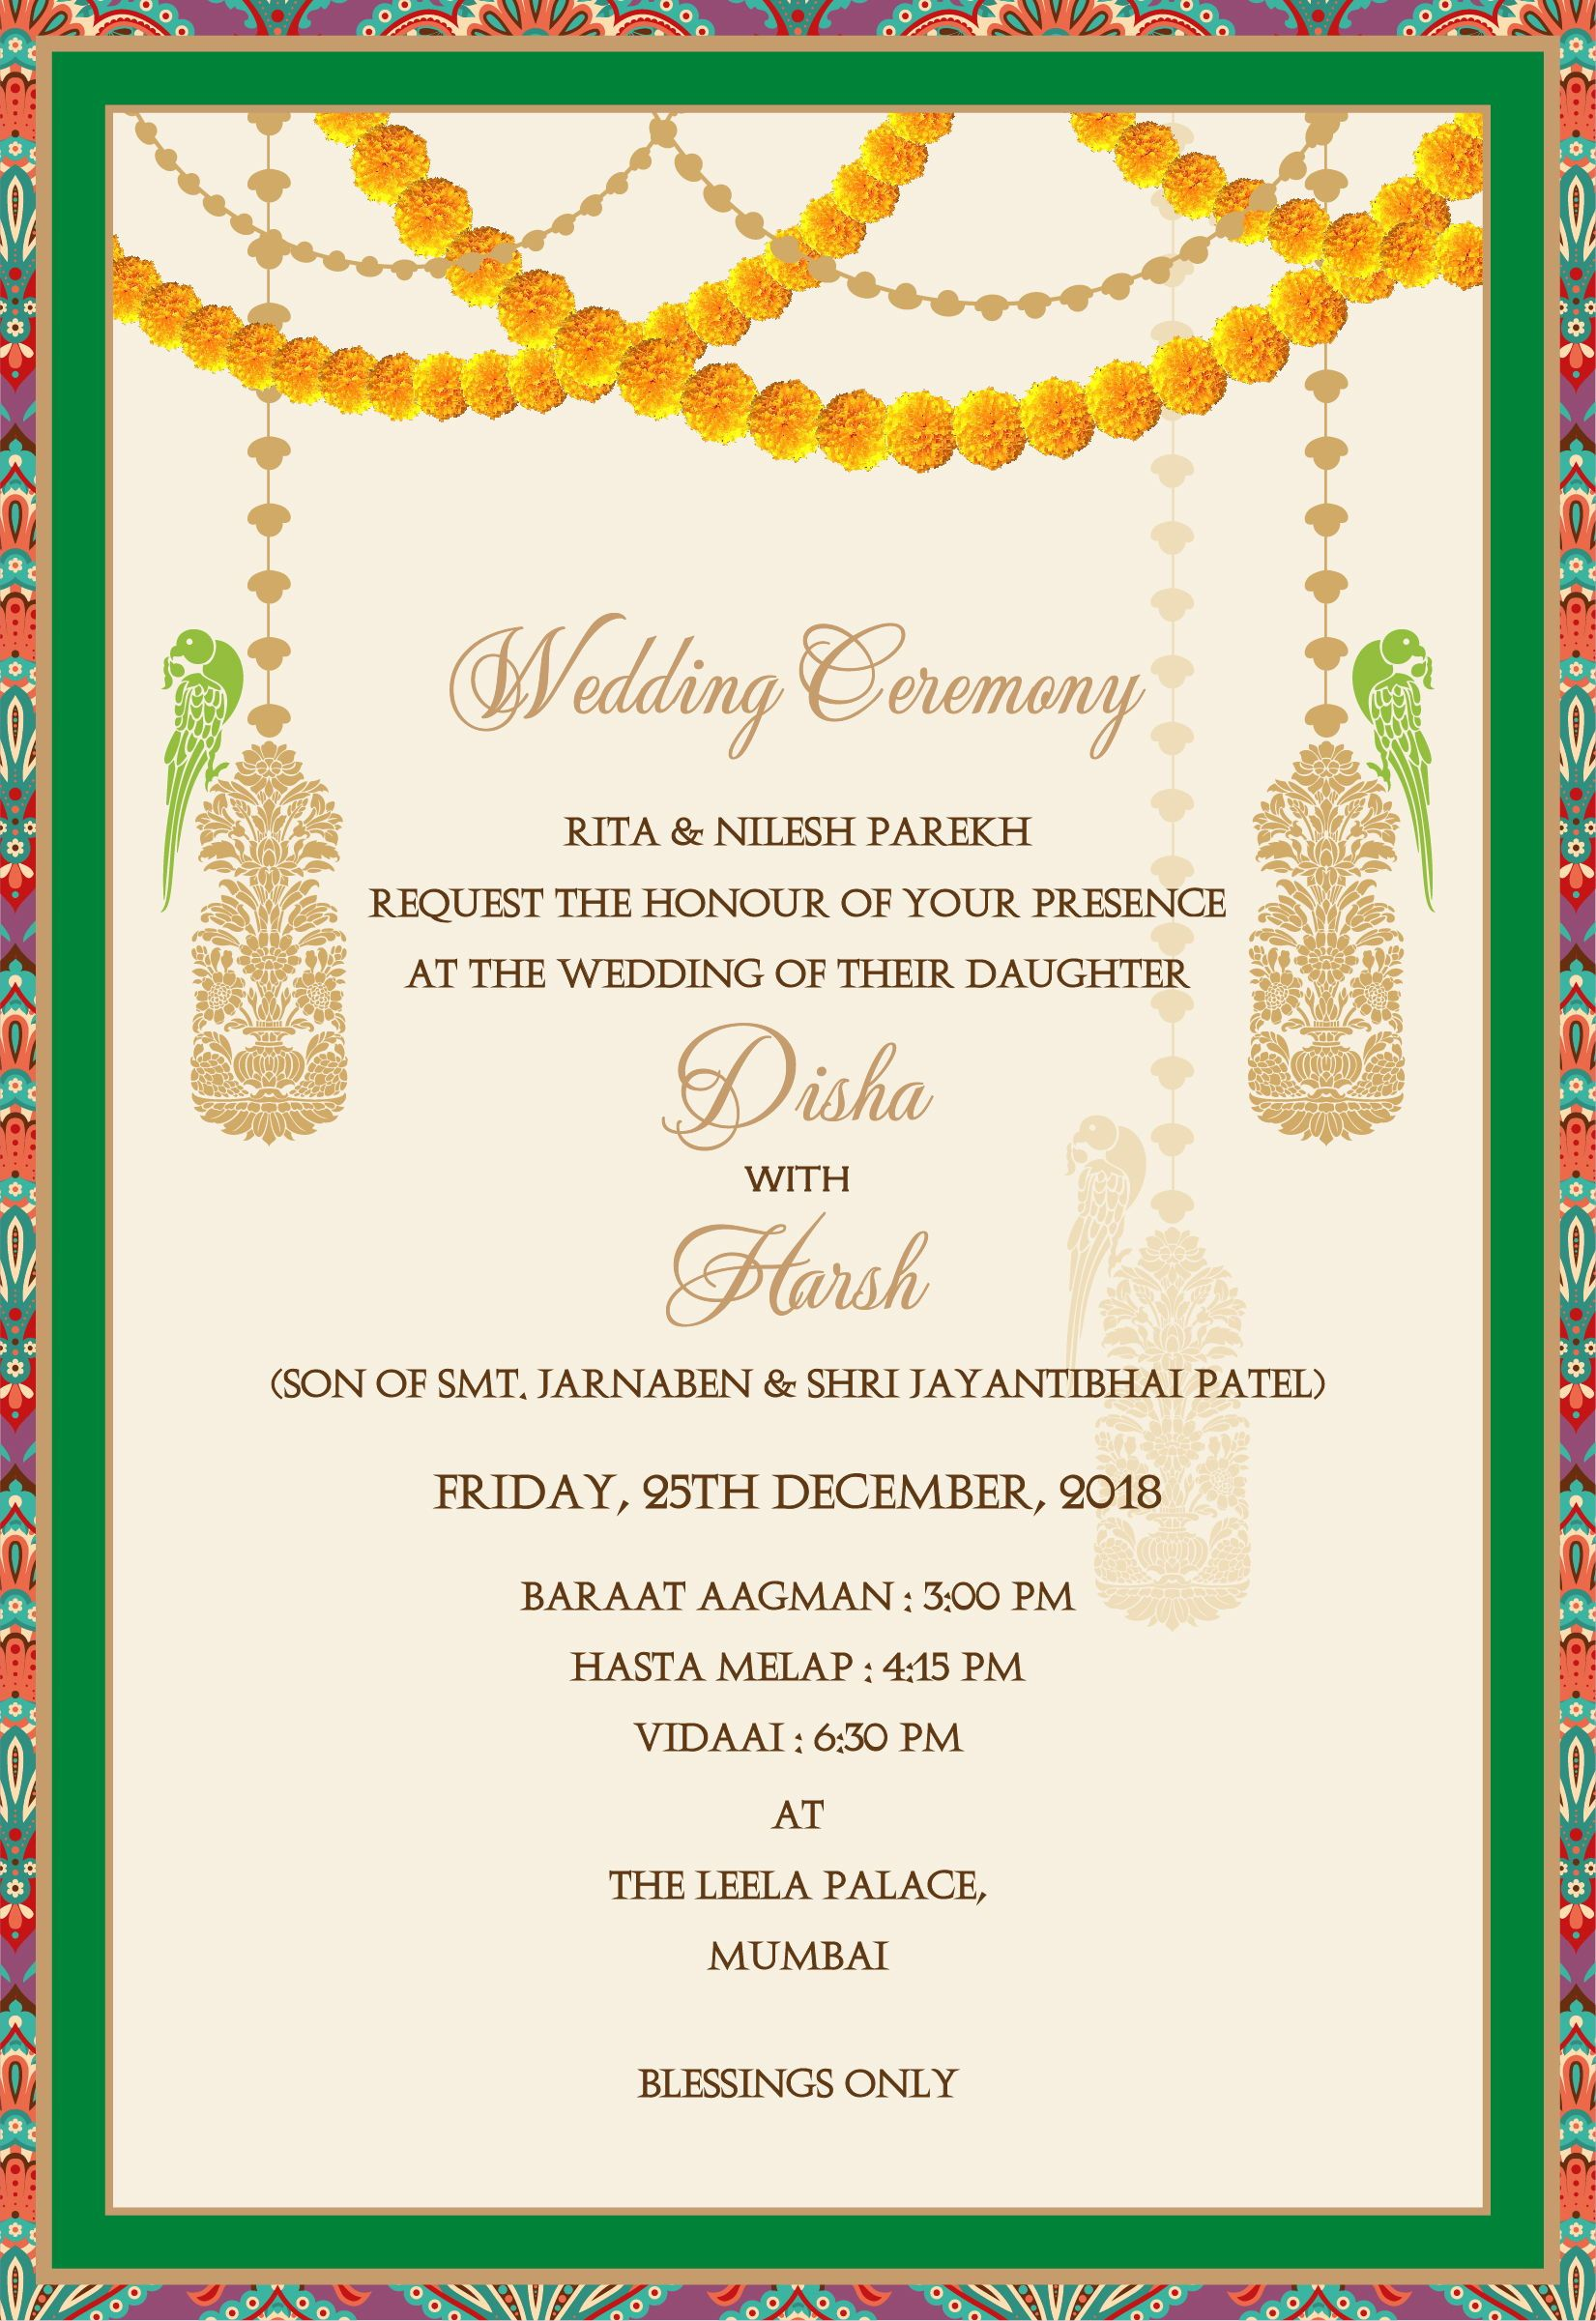 Wedding Invitation Cards Indian Wedding Cards Invites Wedding Stationery E Indian Wedding Invitation Cards Hindu Wedding Invitations Wedding Card Wordings